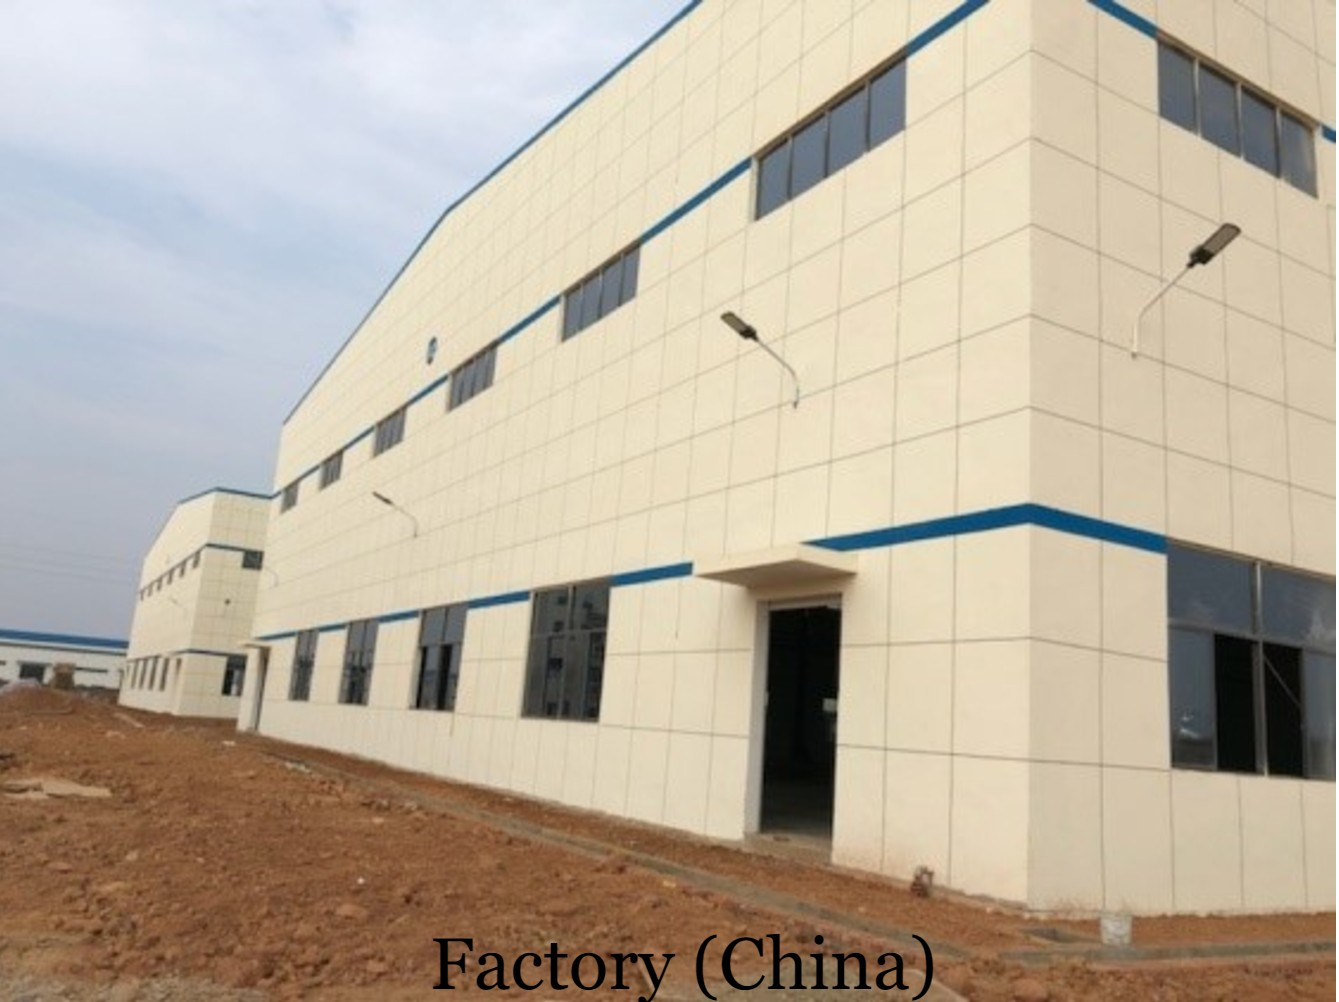 Another Successful Project Completed using Tech-Dry Densifier Sealers in China